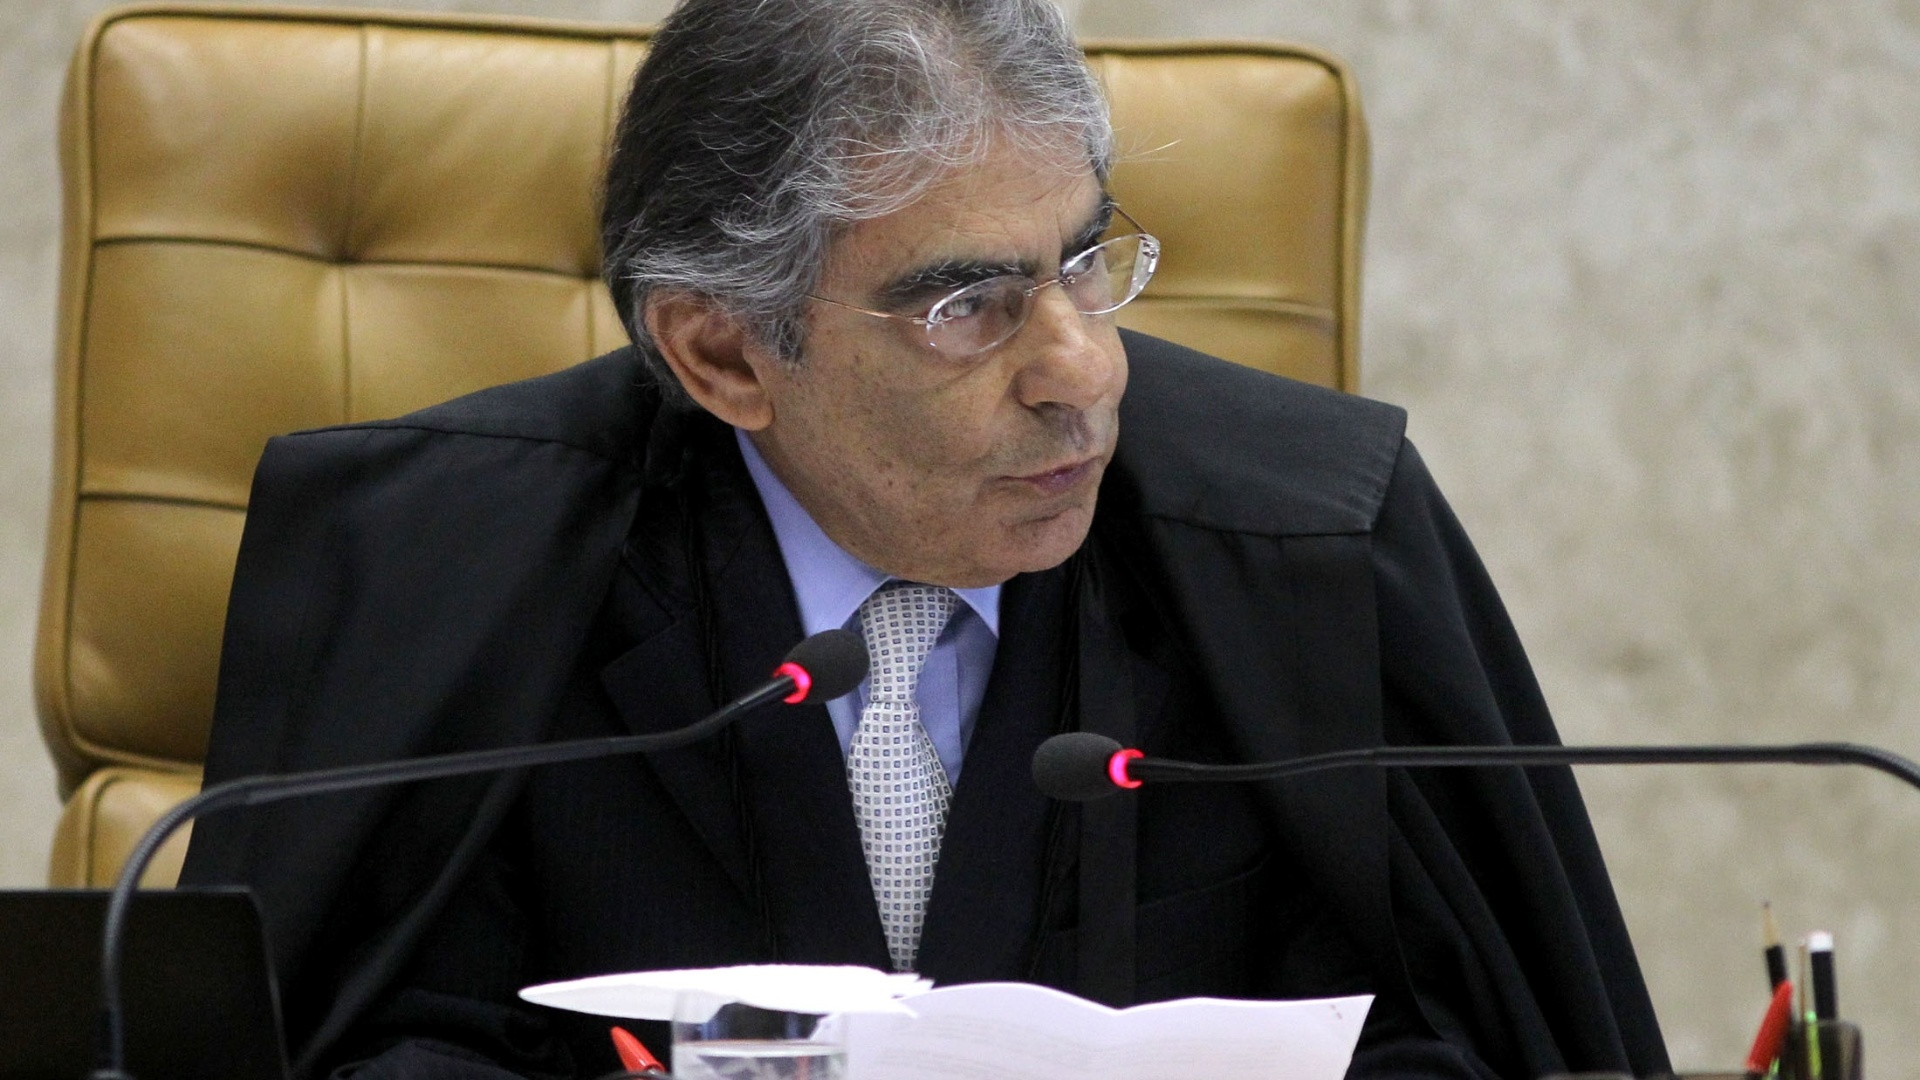 24.out.2012 - O presidente do Supremo Tribunal Federal, o ministro Ayres Britto, acompanha sesso de julgamento do mensalo no Supremo Tribunal Federal que pretende definir tempo de condenao de Marcos Valrio e demais rus do ncleo publicitrio. 